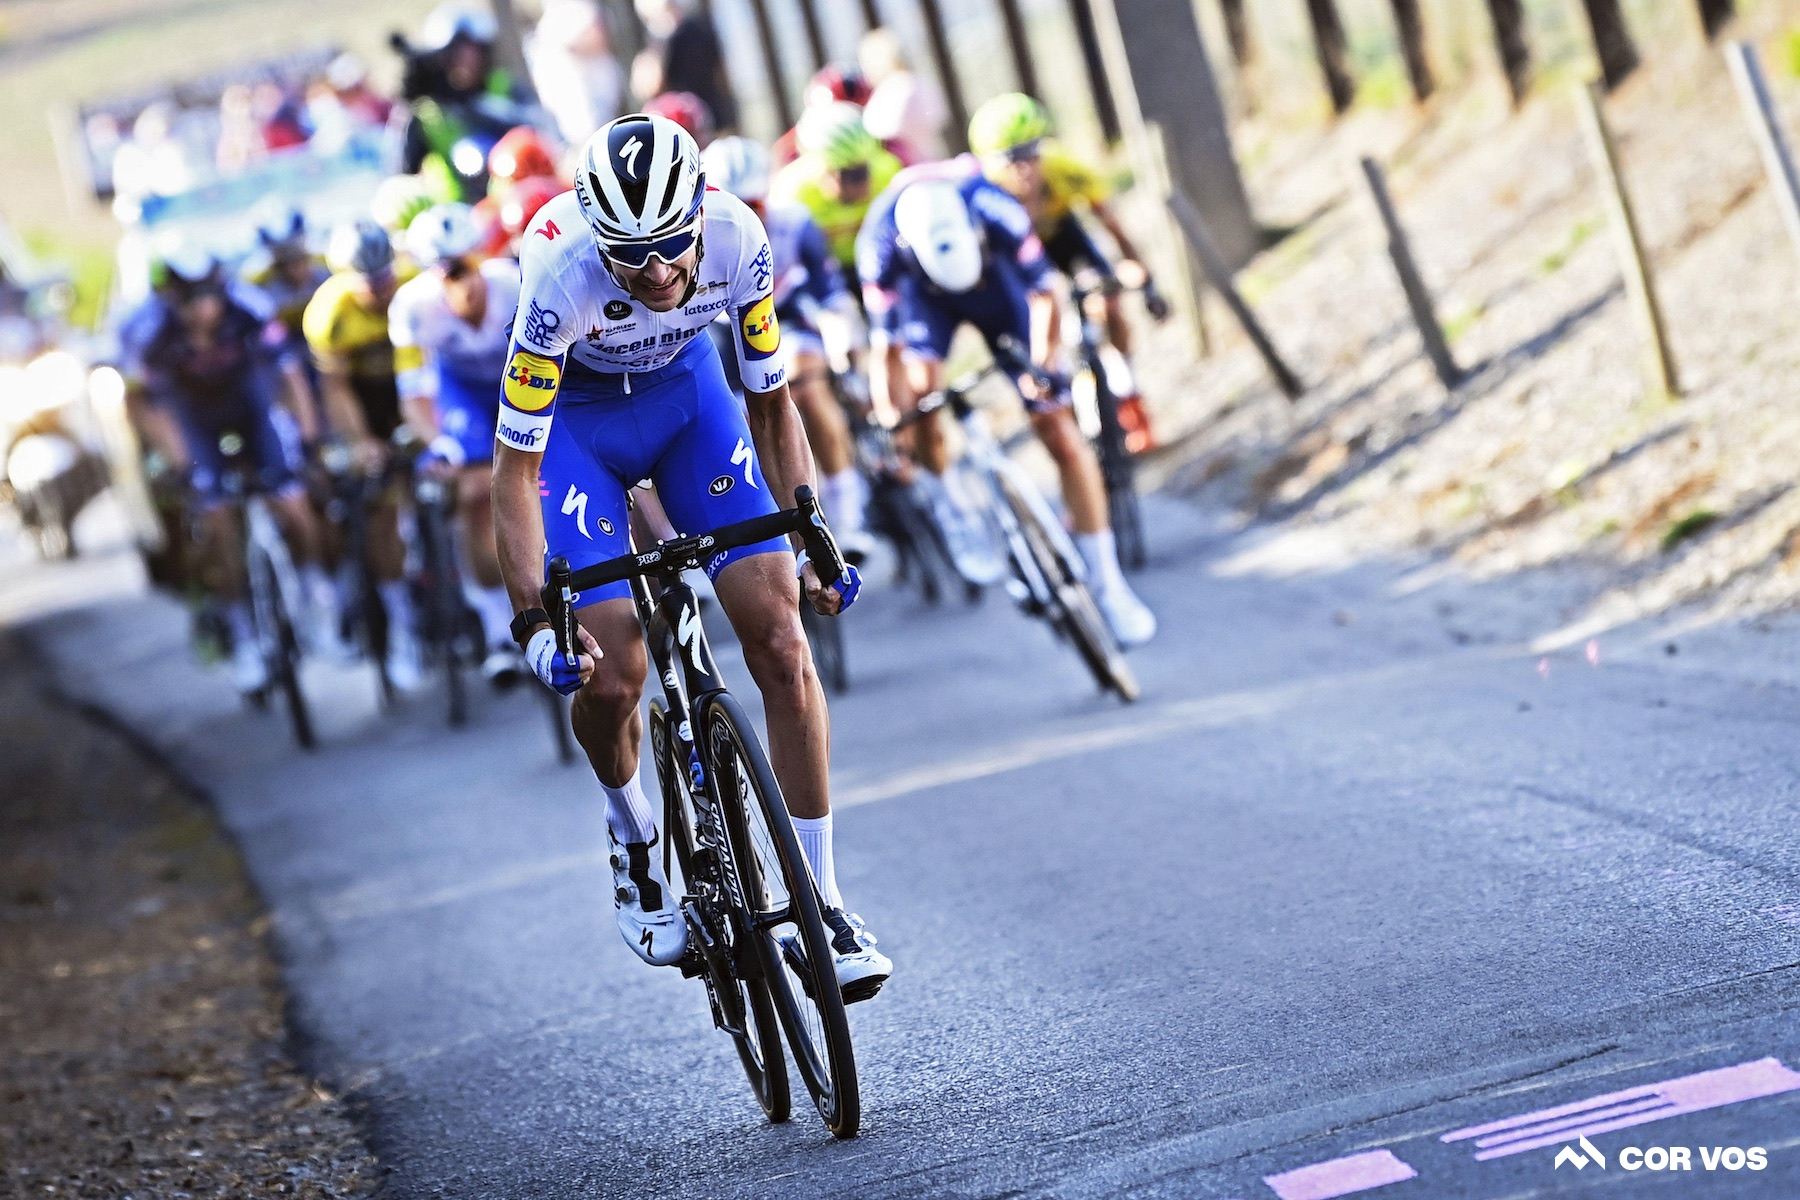 Team car driver hits Pieter Serry from behind